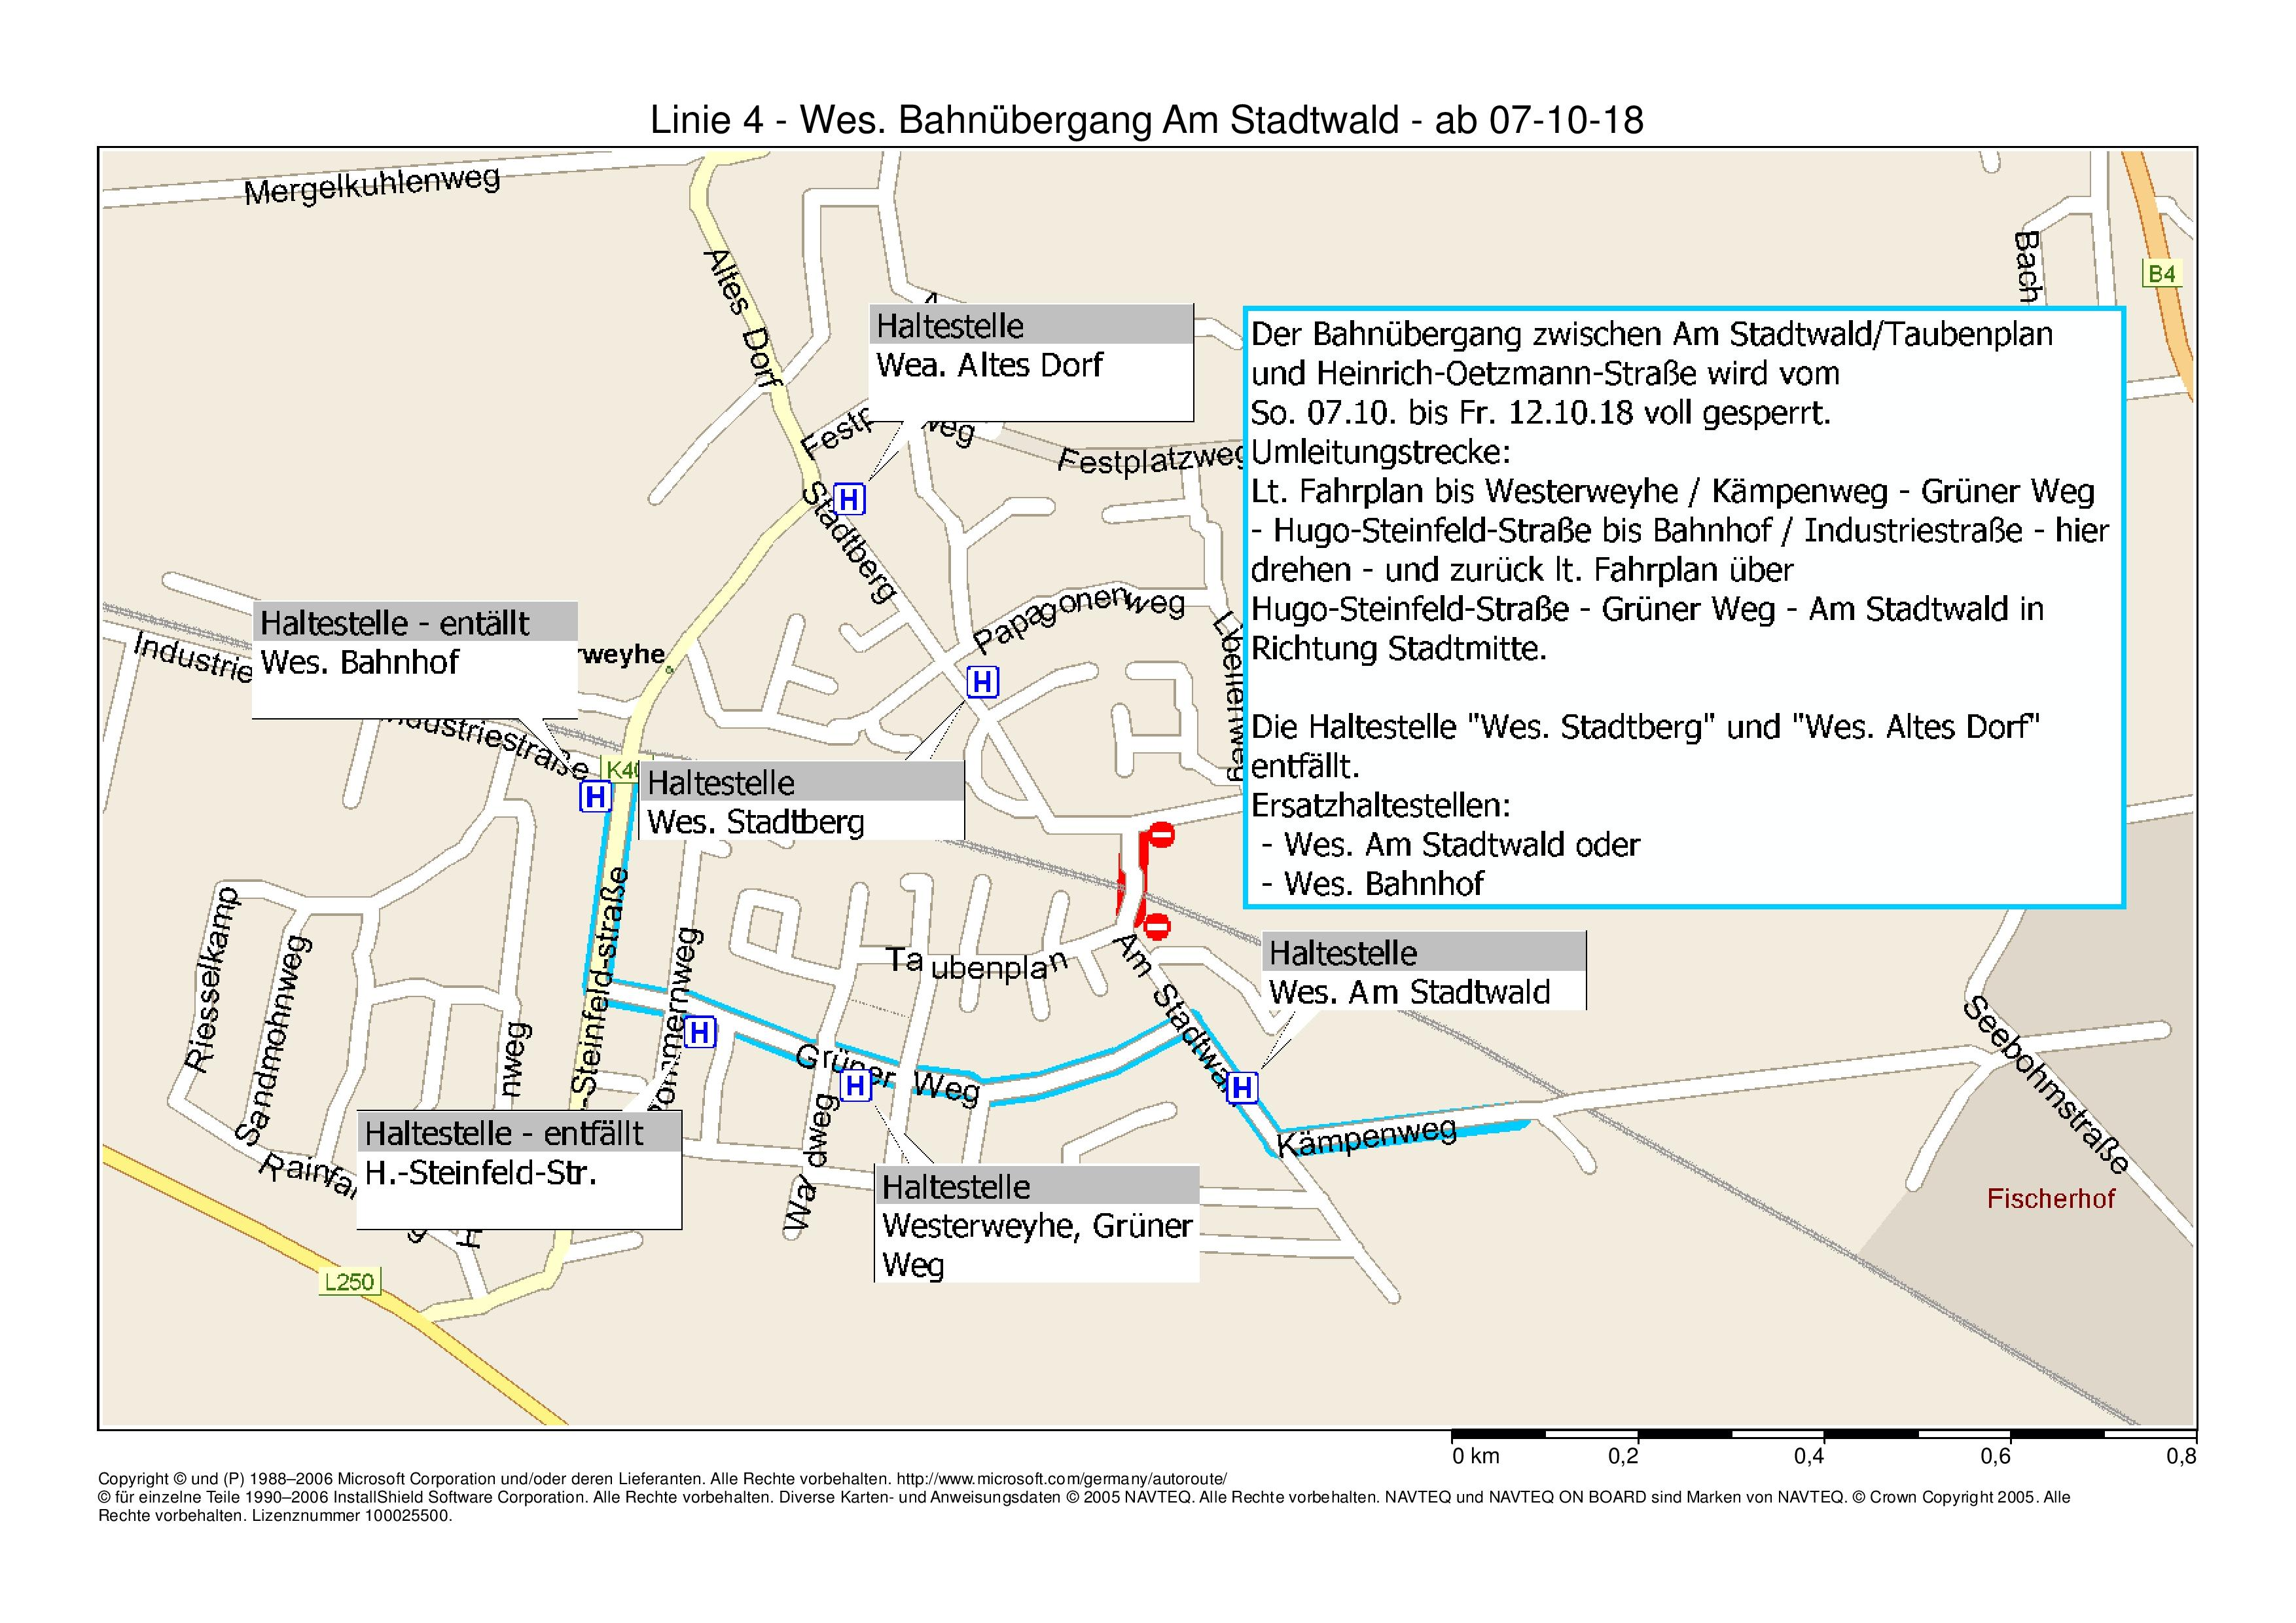 linie_4_-_wes._bahnbergang_am_stadtwald_-_ab_07-10-18-page-001.jpg